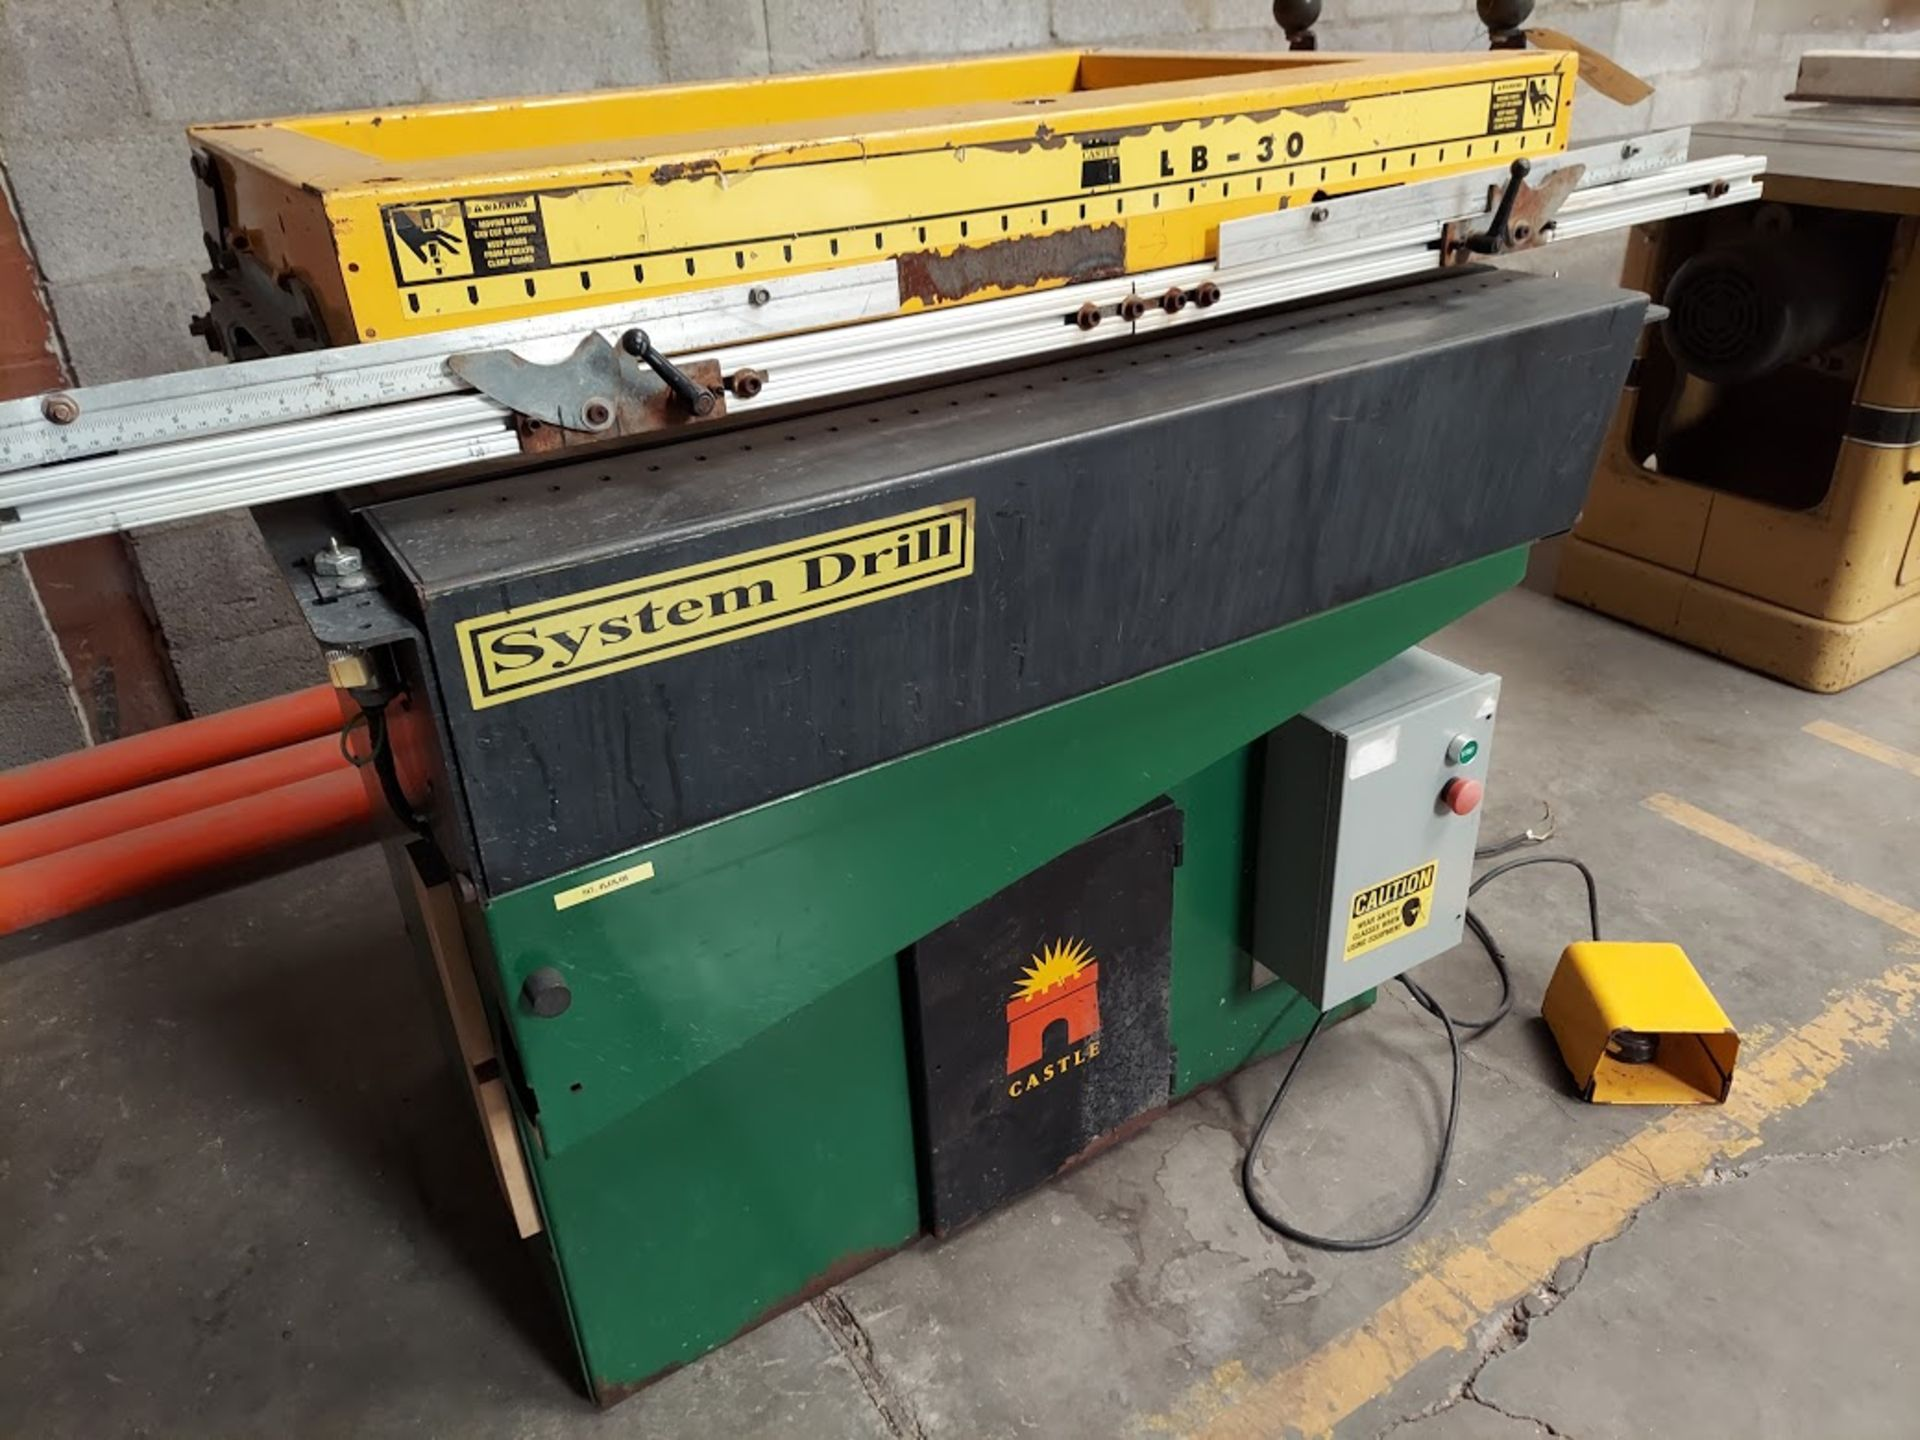 Castle LB-30 Line Boring Machine, Single head with 30 Spindles, 230 Volts 1 Phase